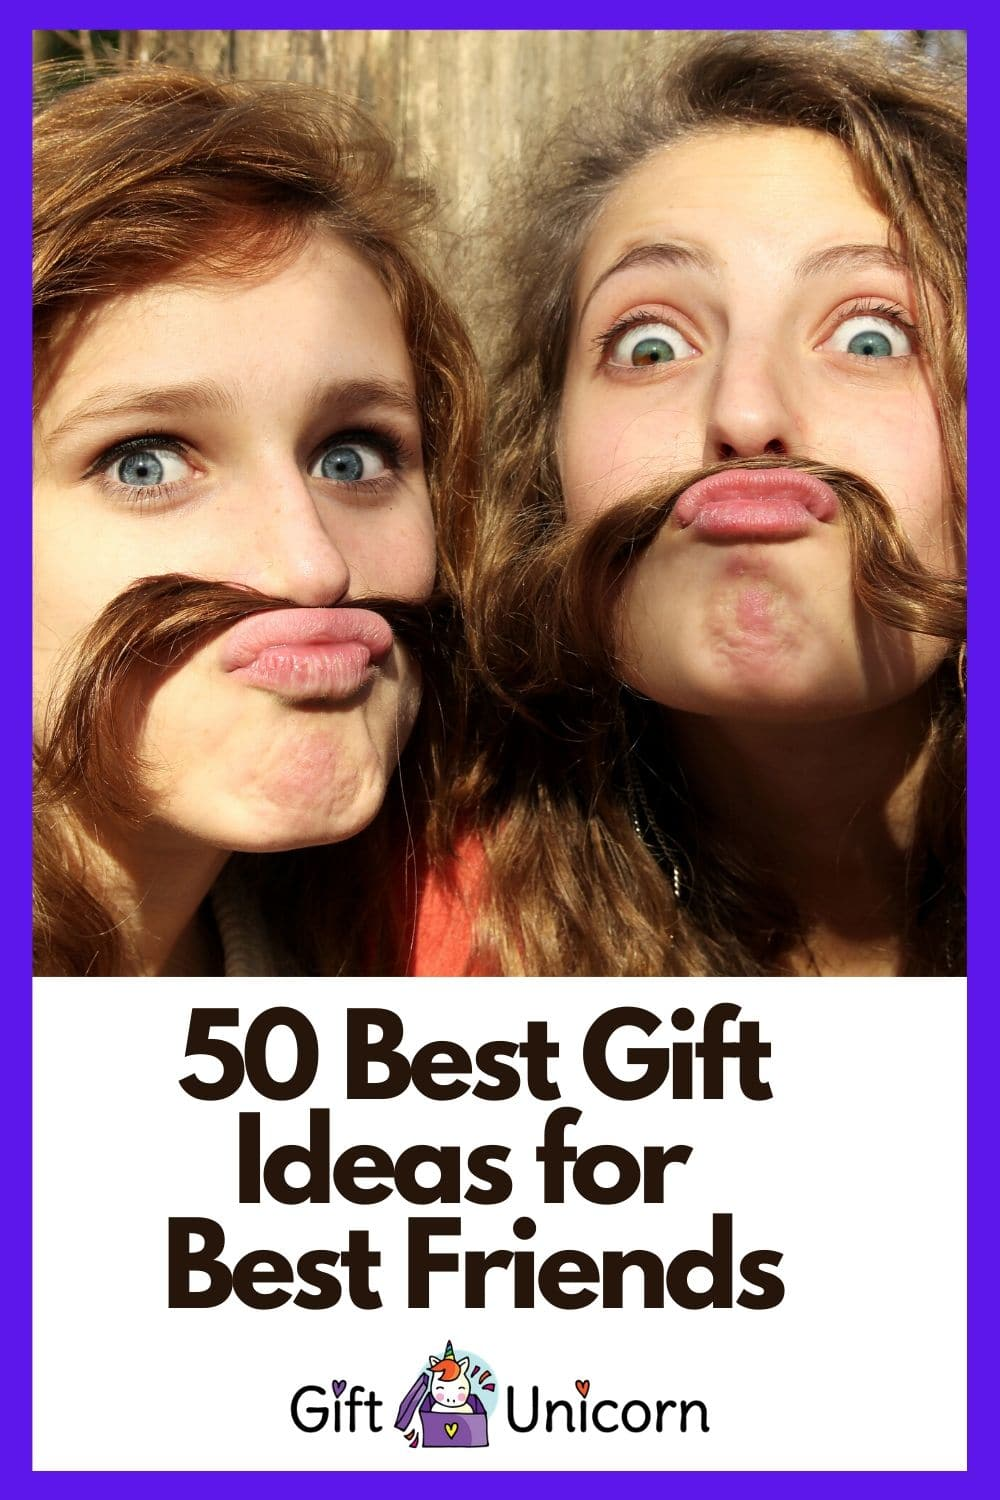 50 Best gifts for best friends